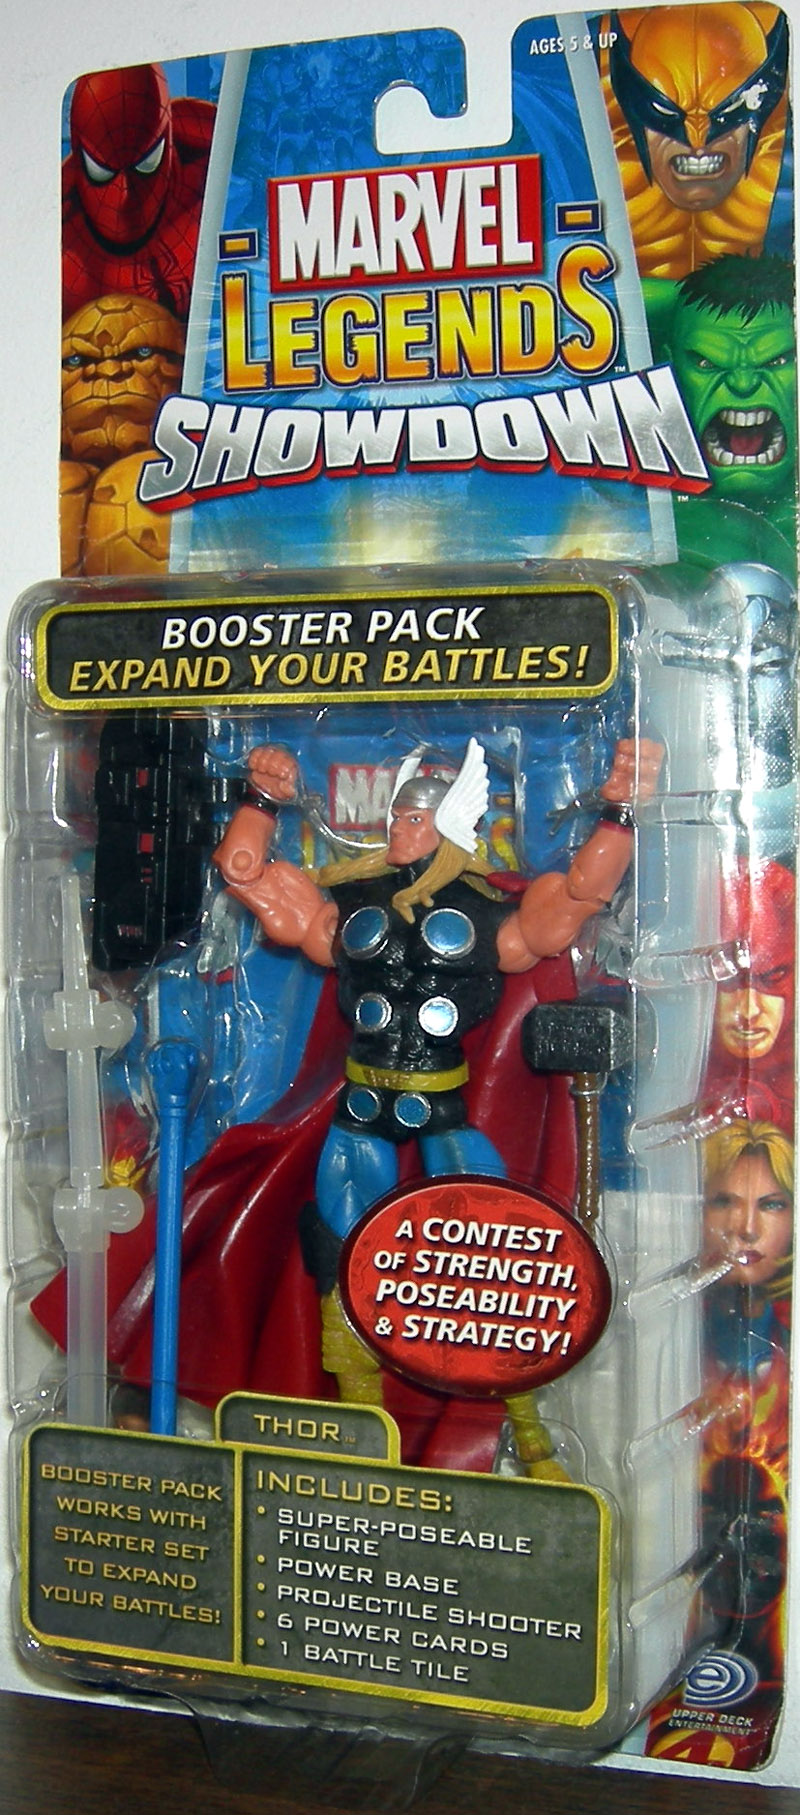 Thor (Marvel Legends Showdown)